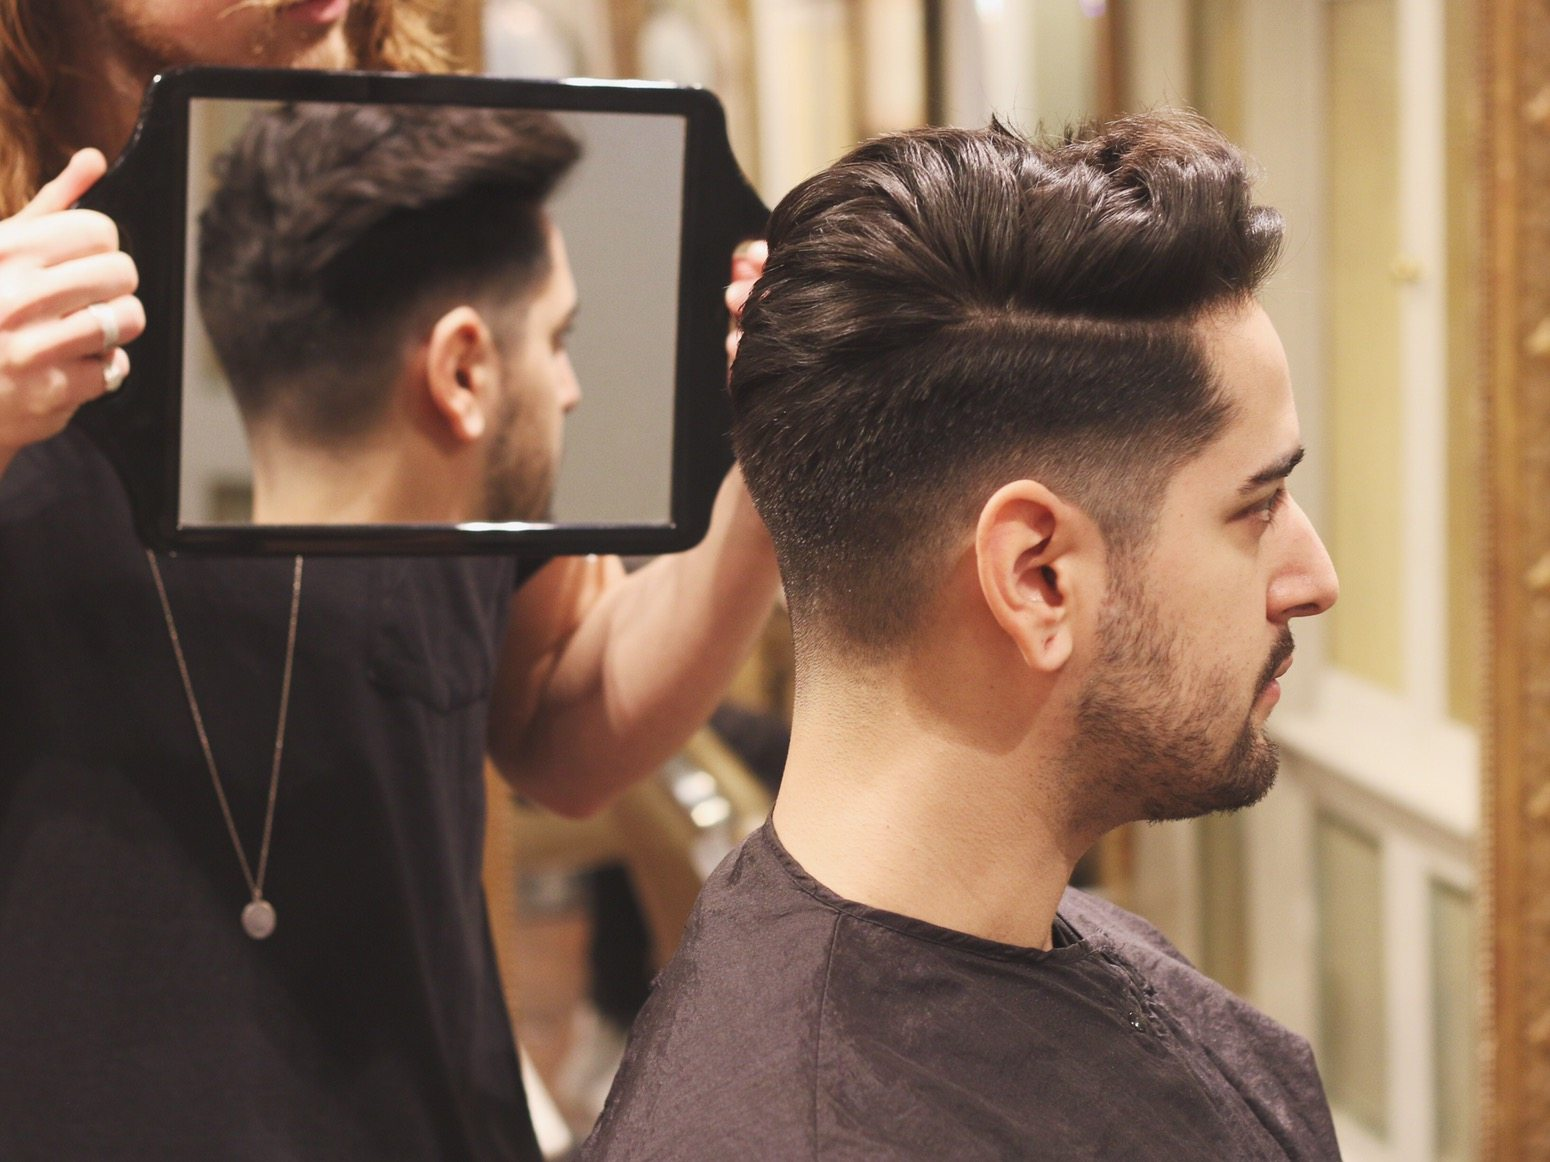 Mens Haircut And Style Undercut Quiff - Undercut hairstyle explained